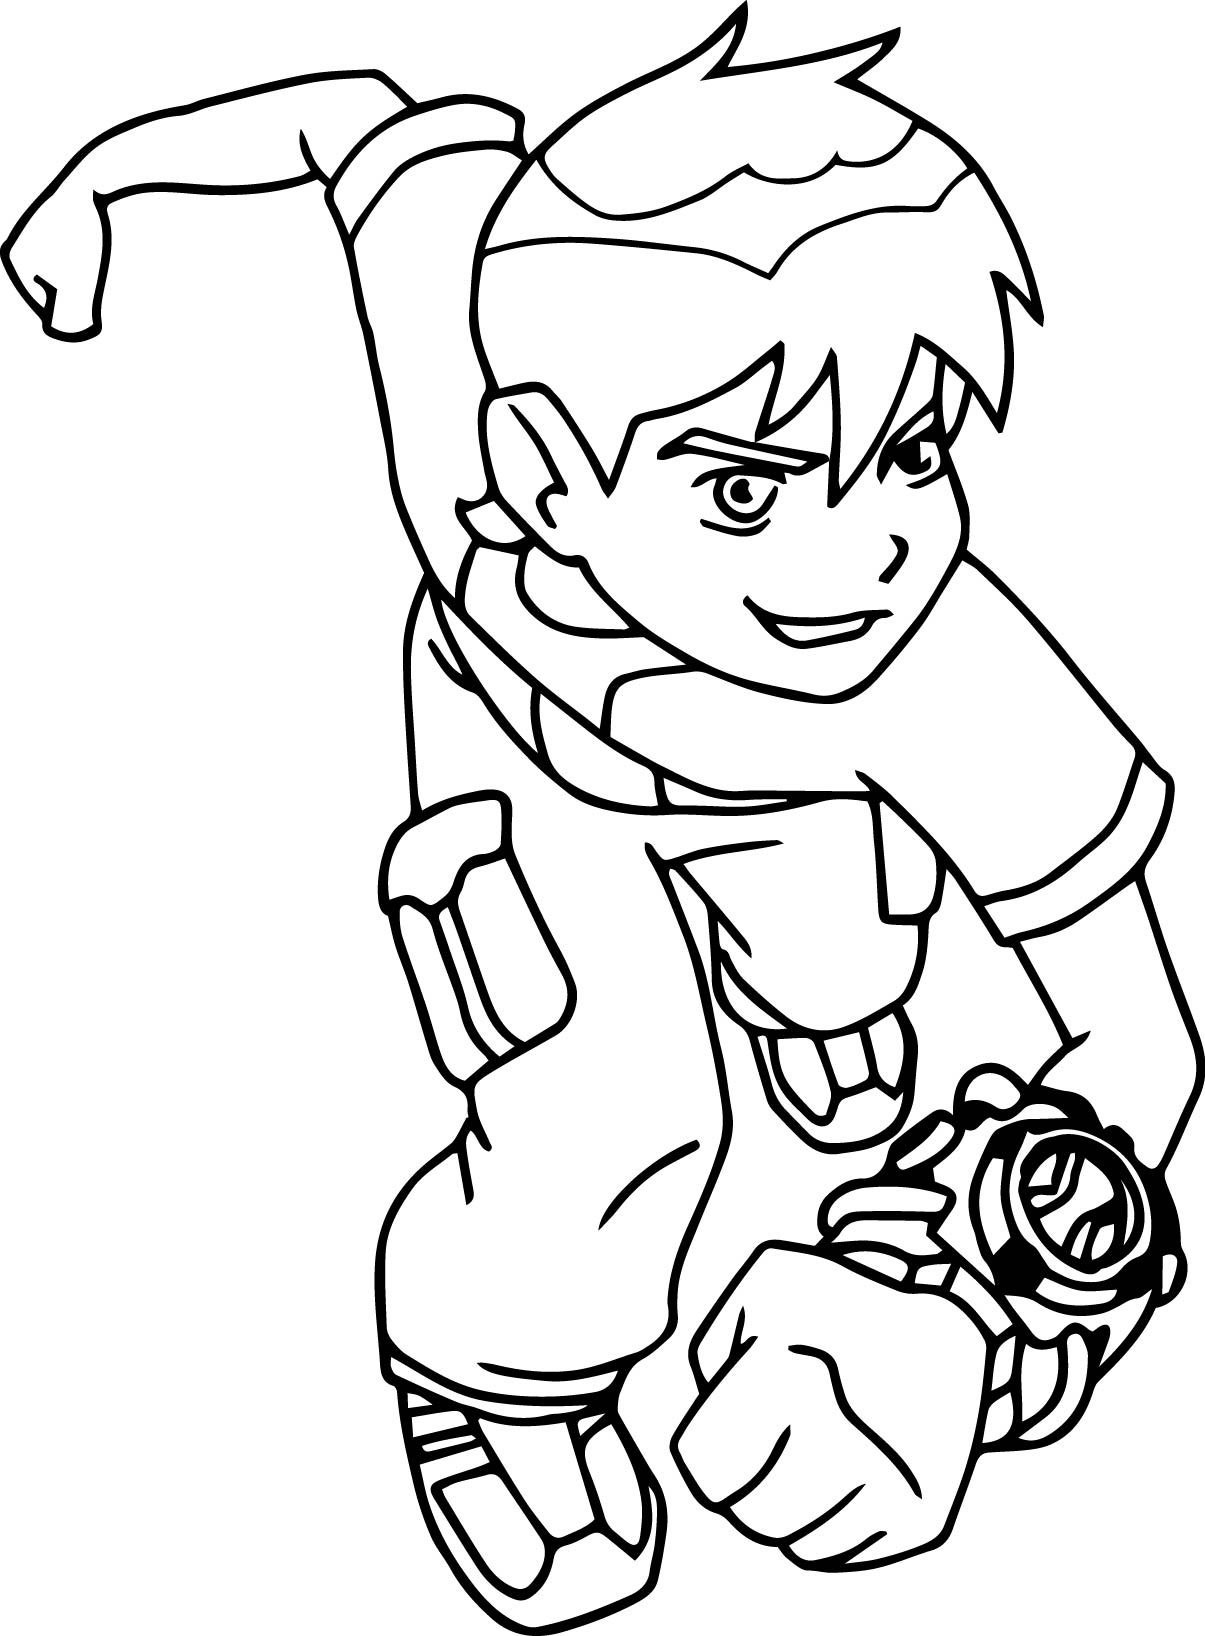 Jls colouring pages to print - Cool Ben 10 Coloring Pages To Print Mcoloring